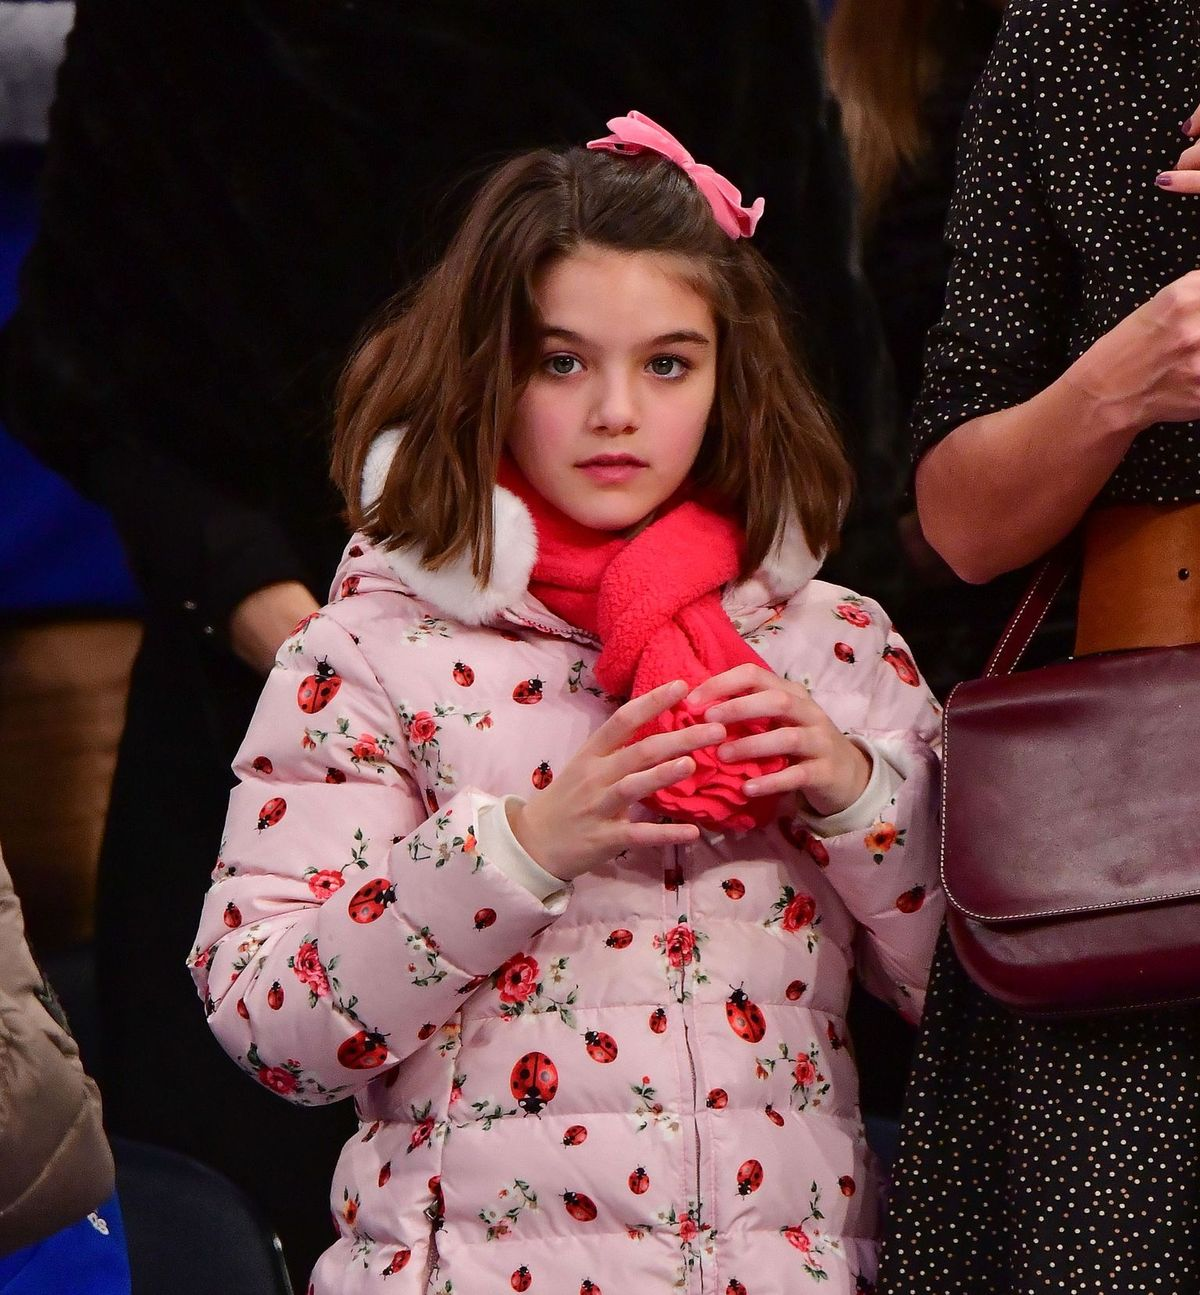 Suri Cruise asiste al partido Oklahoma City Thunder Vs New York Knicks en el Madison Square Garden el 16 de diciembre de 2017 en Nueva York. | Foto: Getty Images